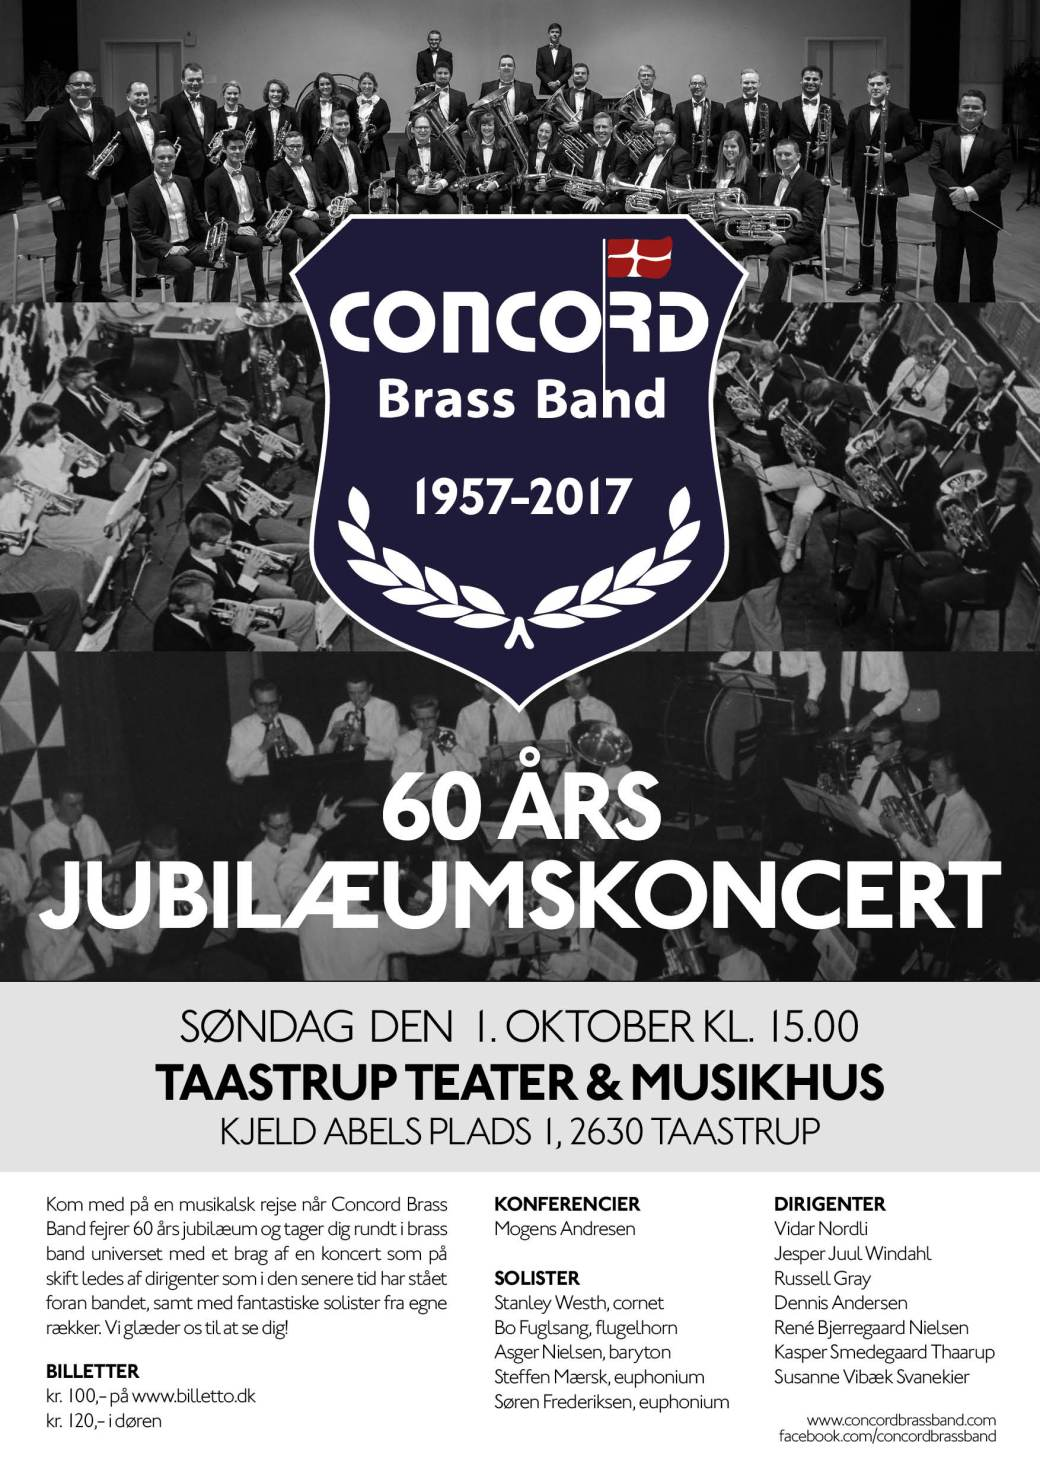 Concord Brass Band - Plakat - web 3